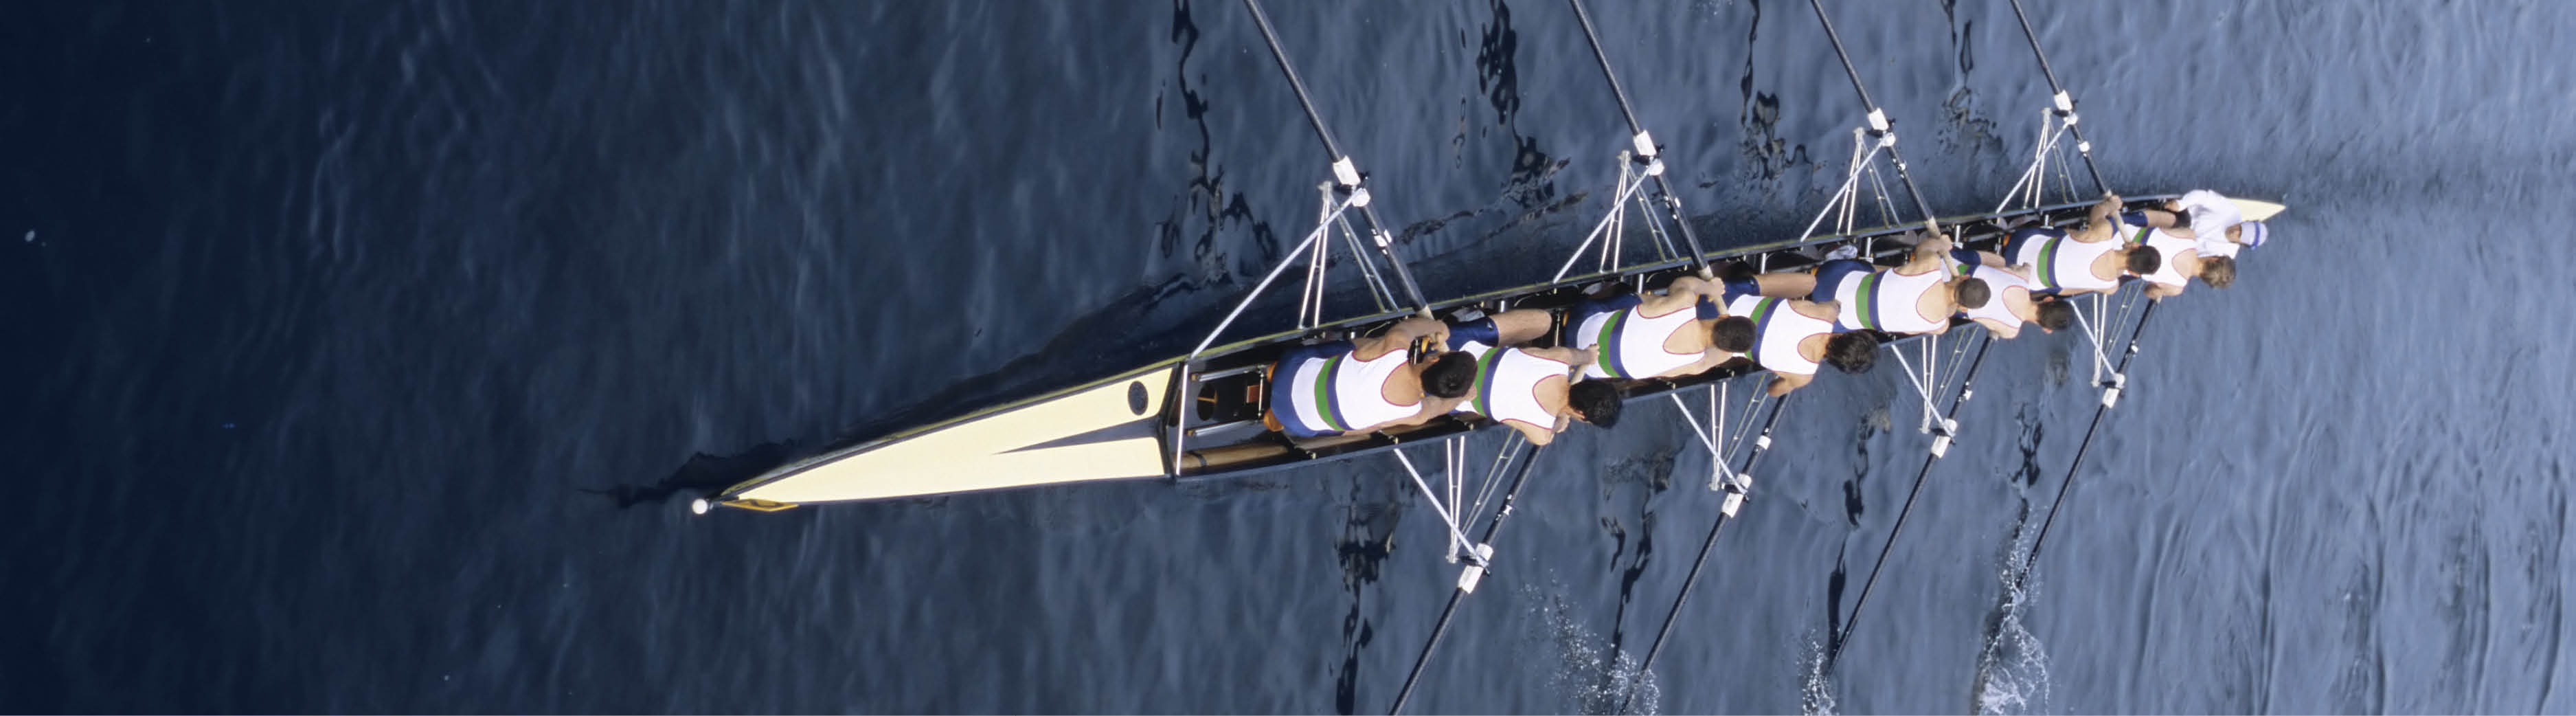 Image of rowers rowing